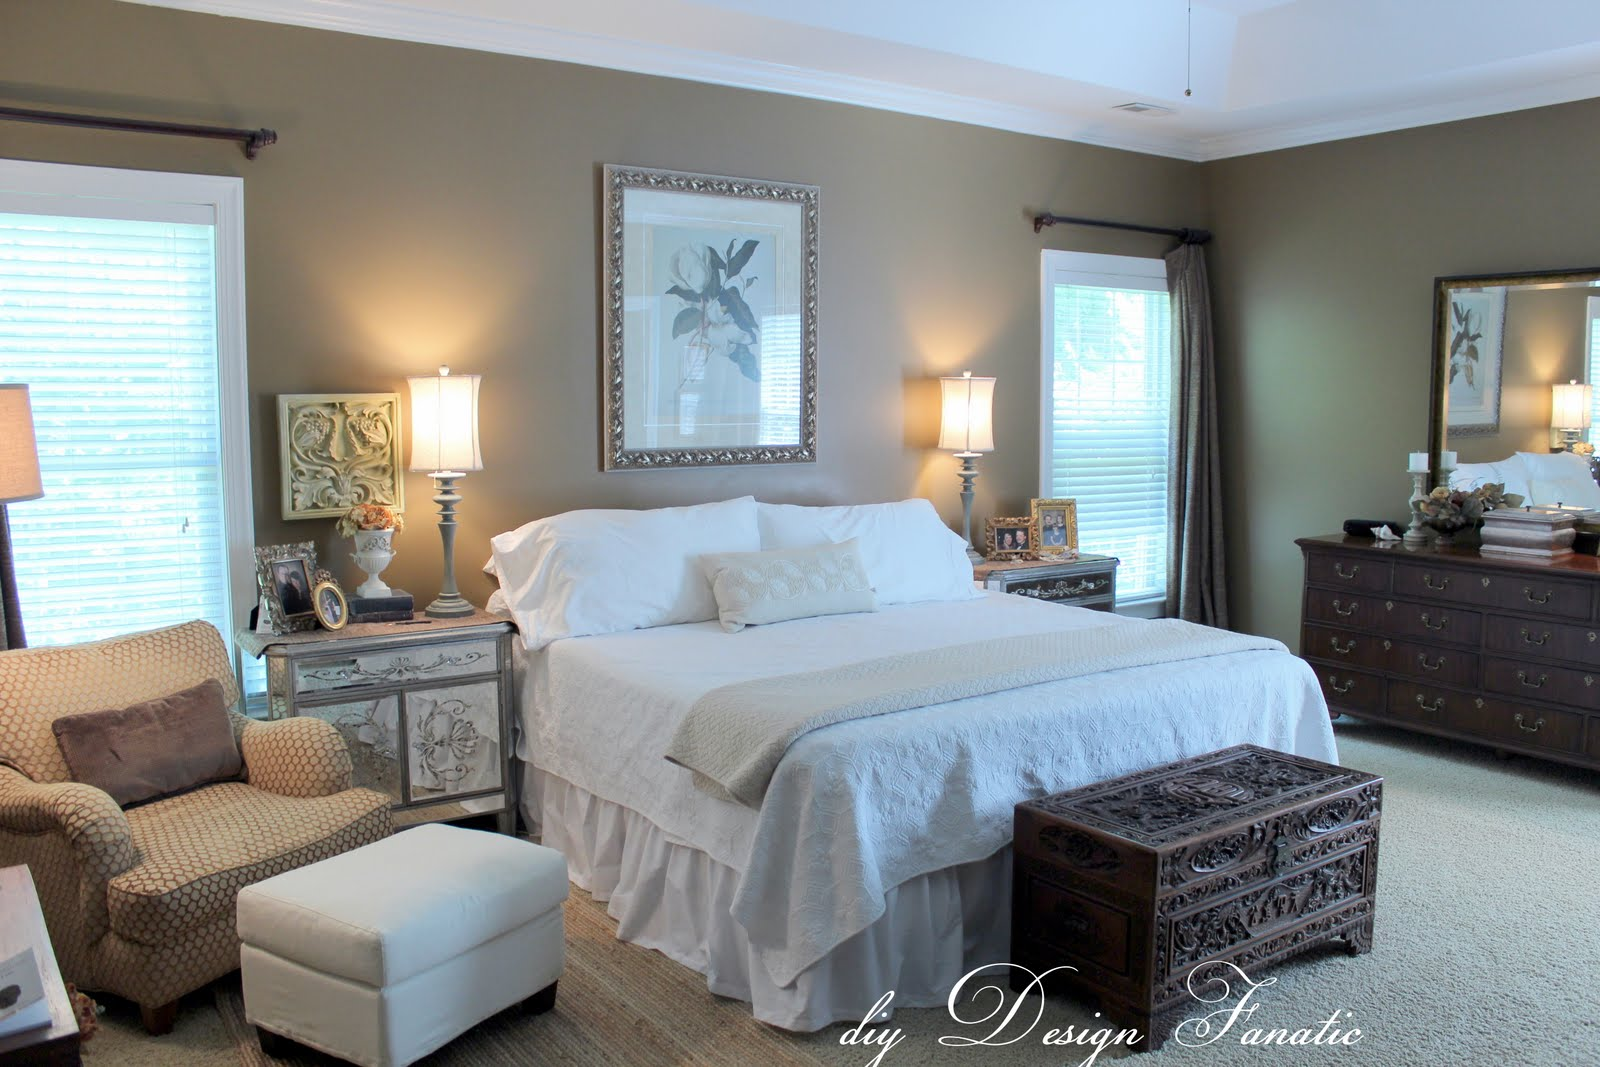 Diy design fanatic decorating a master bedroom on a budget - Master bedroom decorating ideas on a budget ...